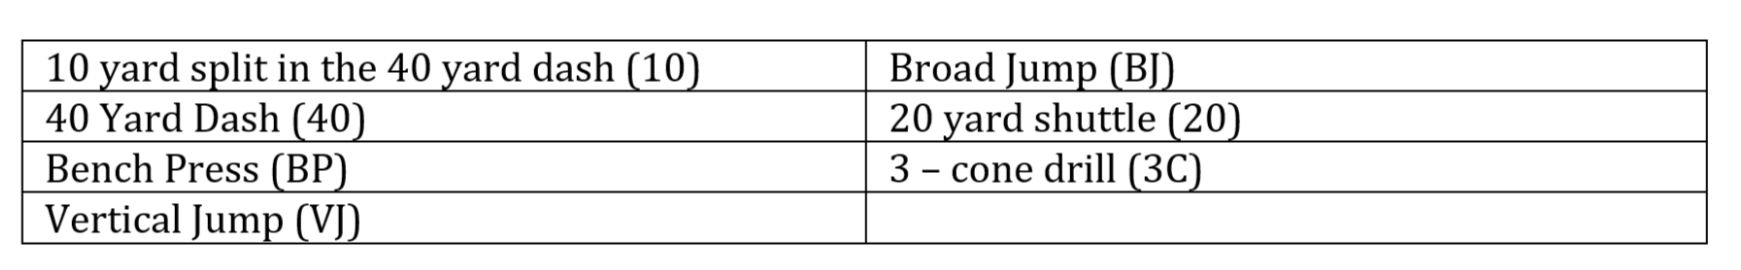 Bengals Receivers Ran A 4 5 Average In Best 40 Yard Dash Time No Receiver Taken The First Round Of This Year S Nfl Draft Slower Than 45